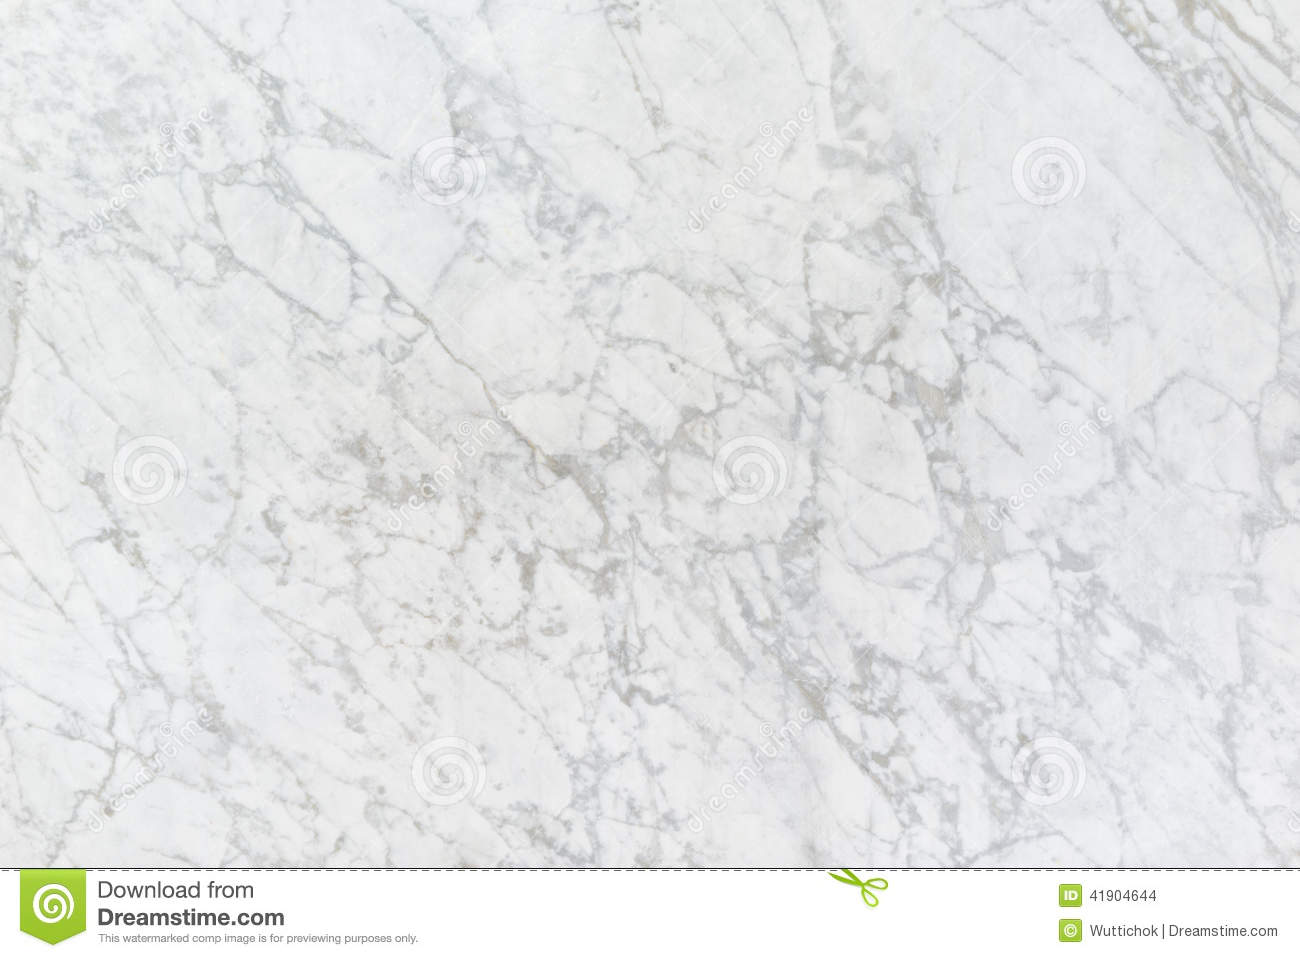 Bright smooth white marble texture background for decorative wall - White Background Marble Wall Texture Stock Photo Image